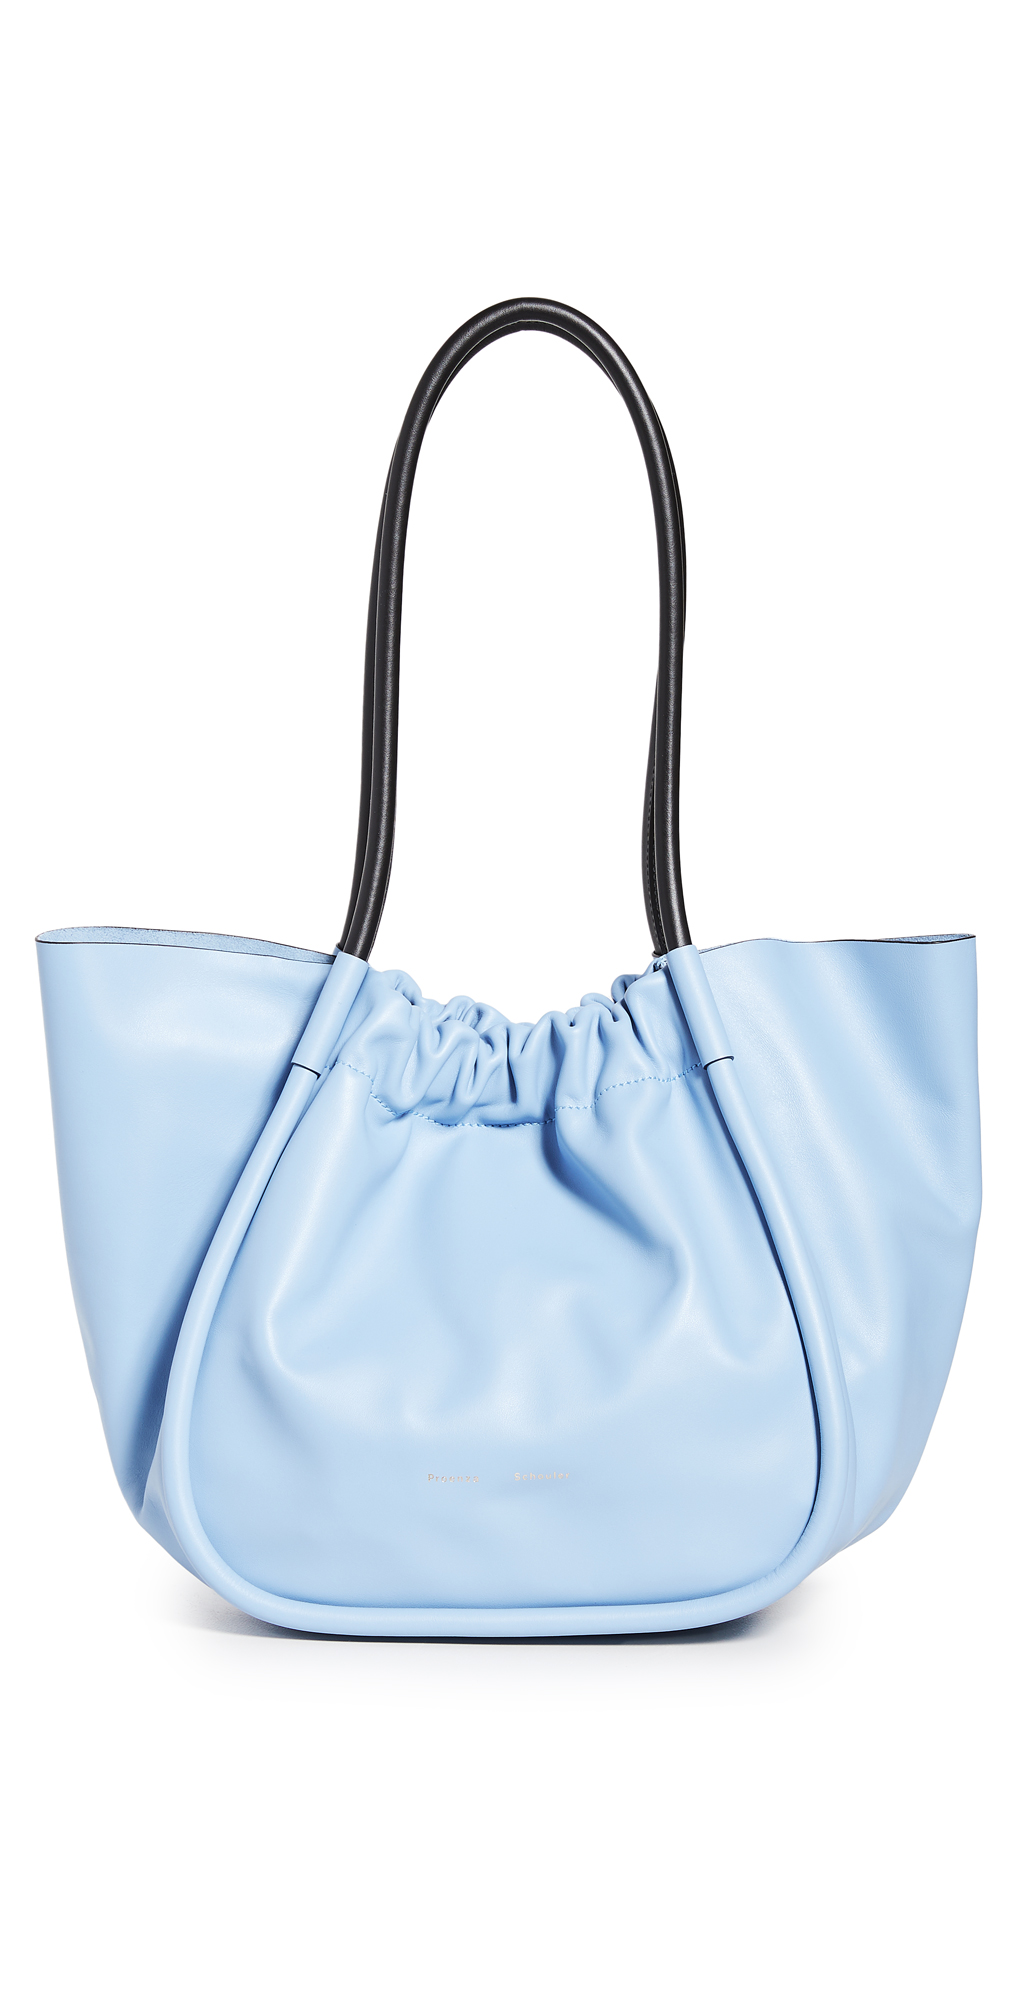 Proenza Schouler Ruched L Leather Tote In Sky Blue